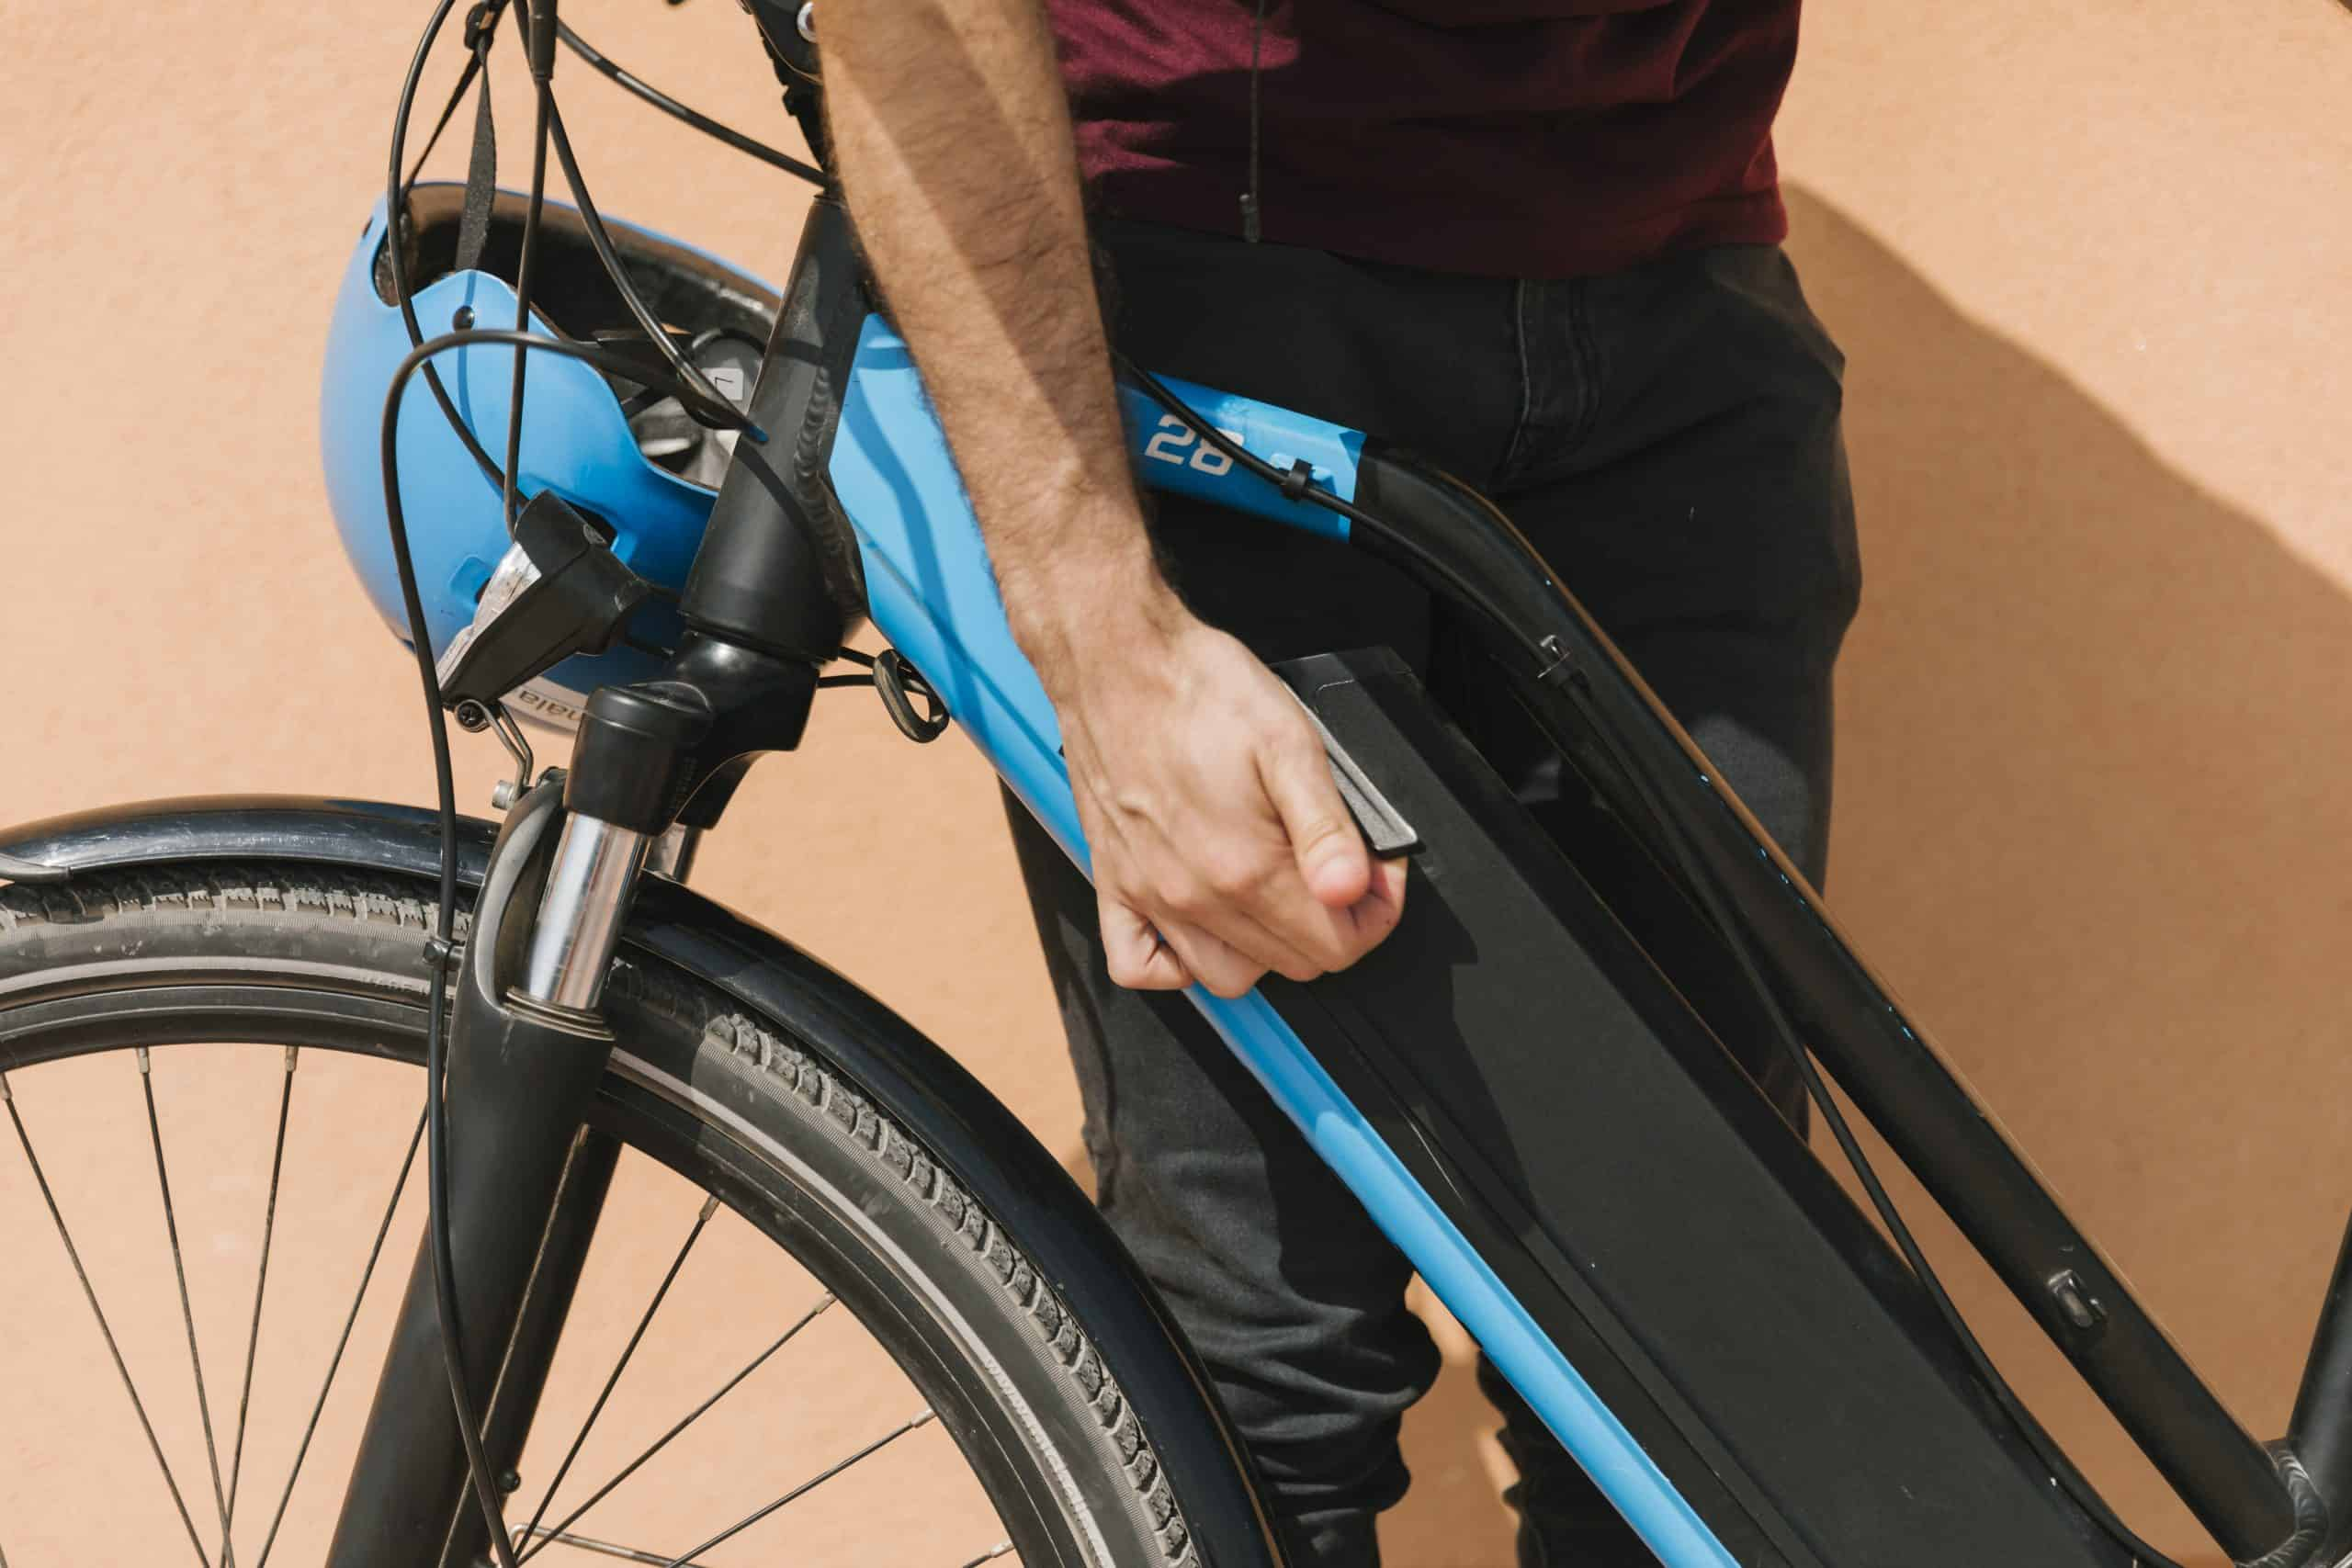 Ebike Battery Guide – All You Need to Know About The Best Ebike Battery For Your Riding Needs 2